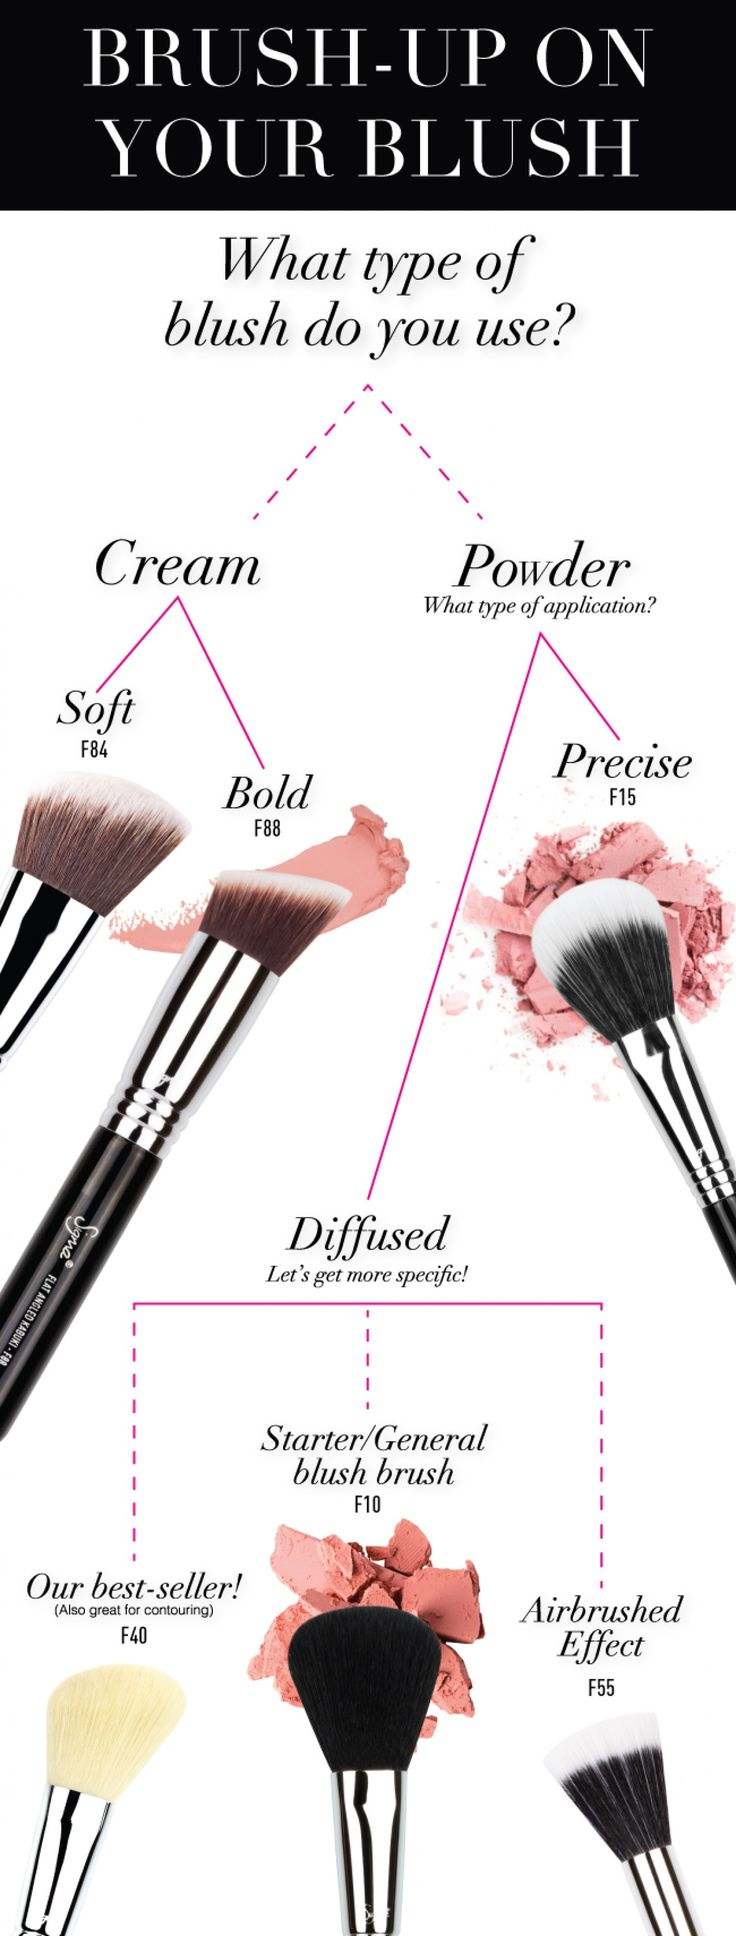 best images about caribbean work life balance makeup conference brush up on your blush infographic